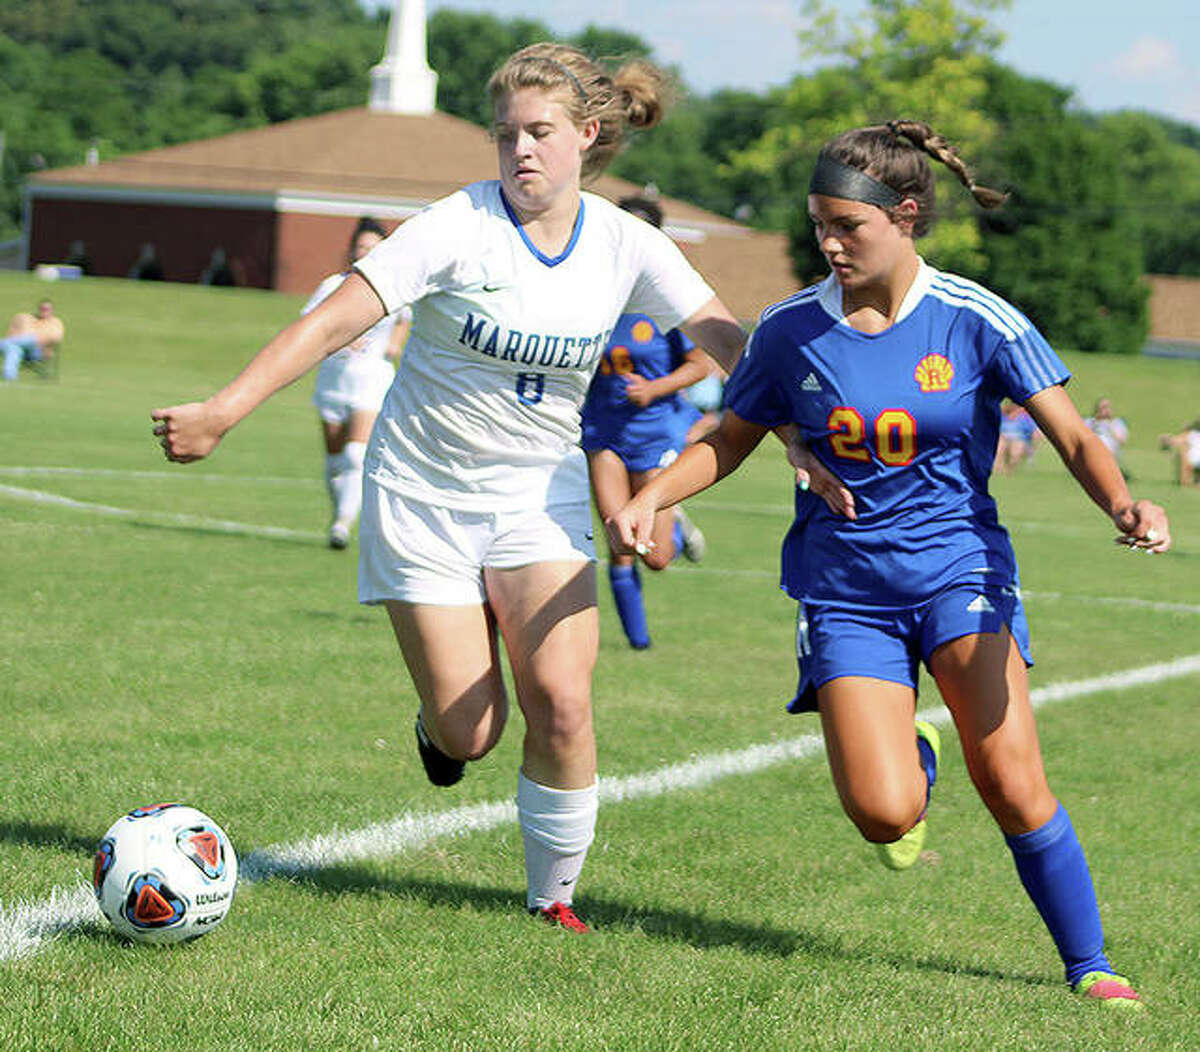 Marquette's Haley Williams (8) and Roxana's Reagan Lynn chase the ball during Friday's Class 1A sectional championship game at the Wood river Soccer Park.